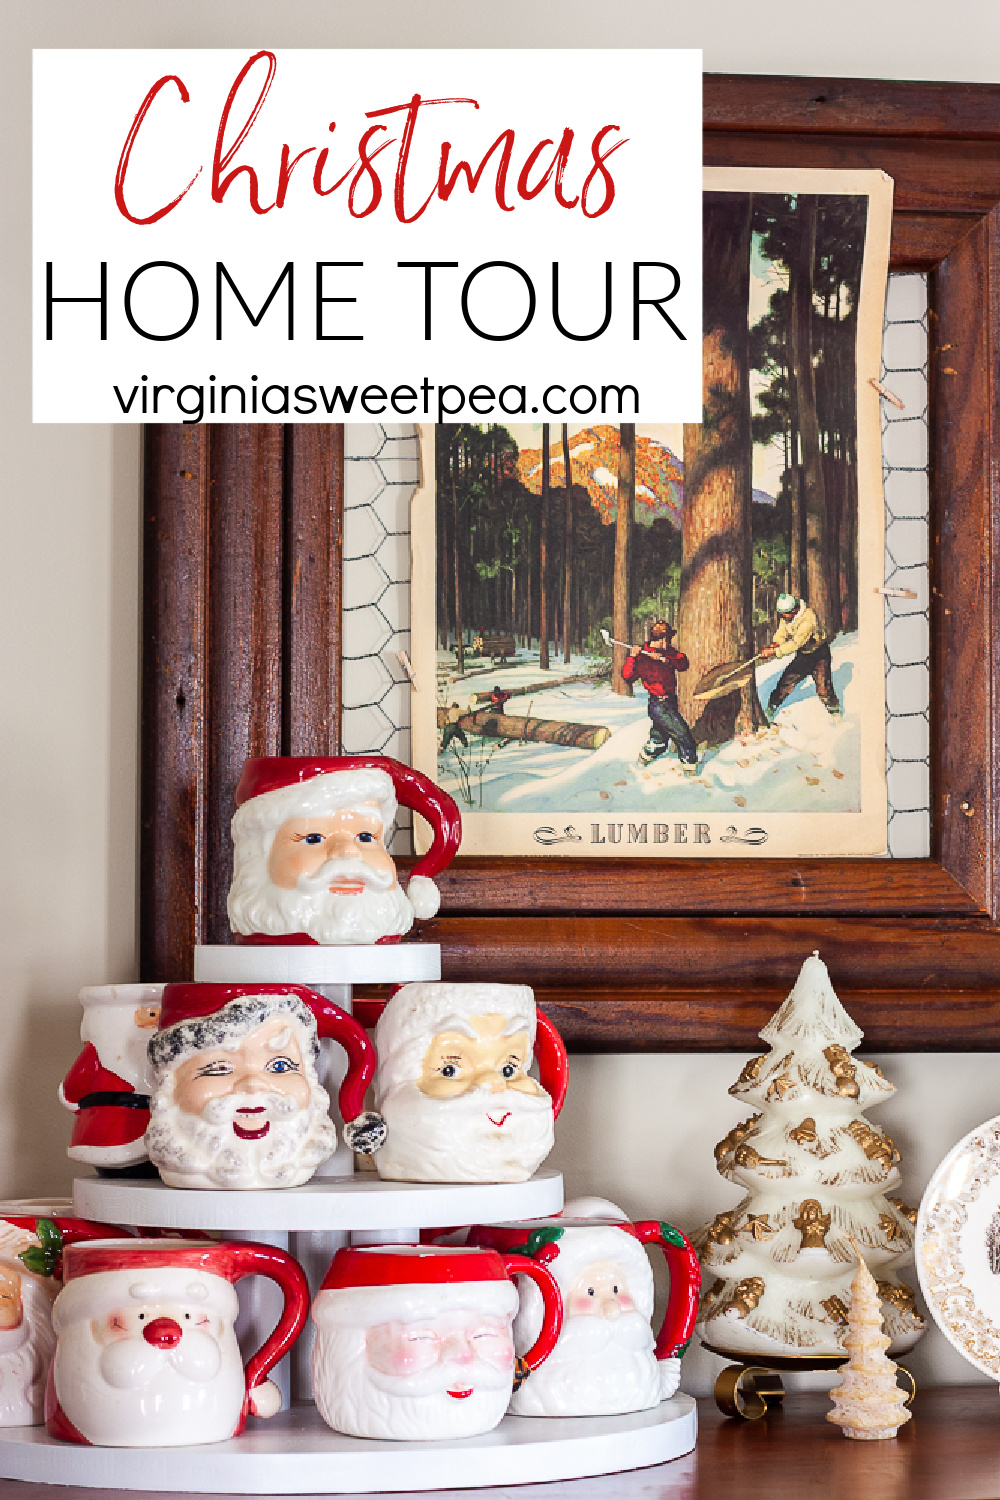 If you like vintage Christmas decor, you'll love touring this home decorated for Christmas!  From vintage Santas to vintage candles, you are sure to enjoy seeing this home's Christmas decorations. via @spaula